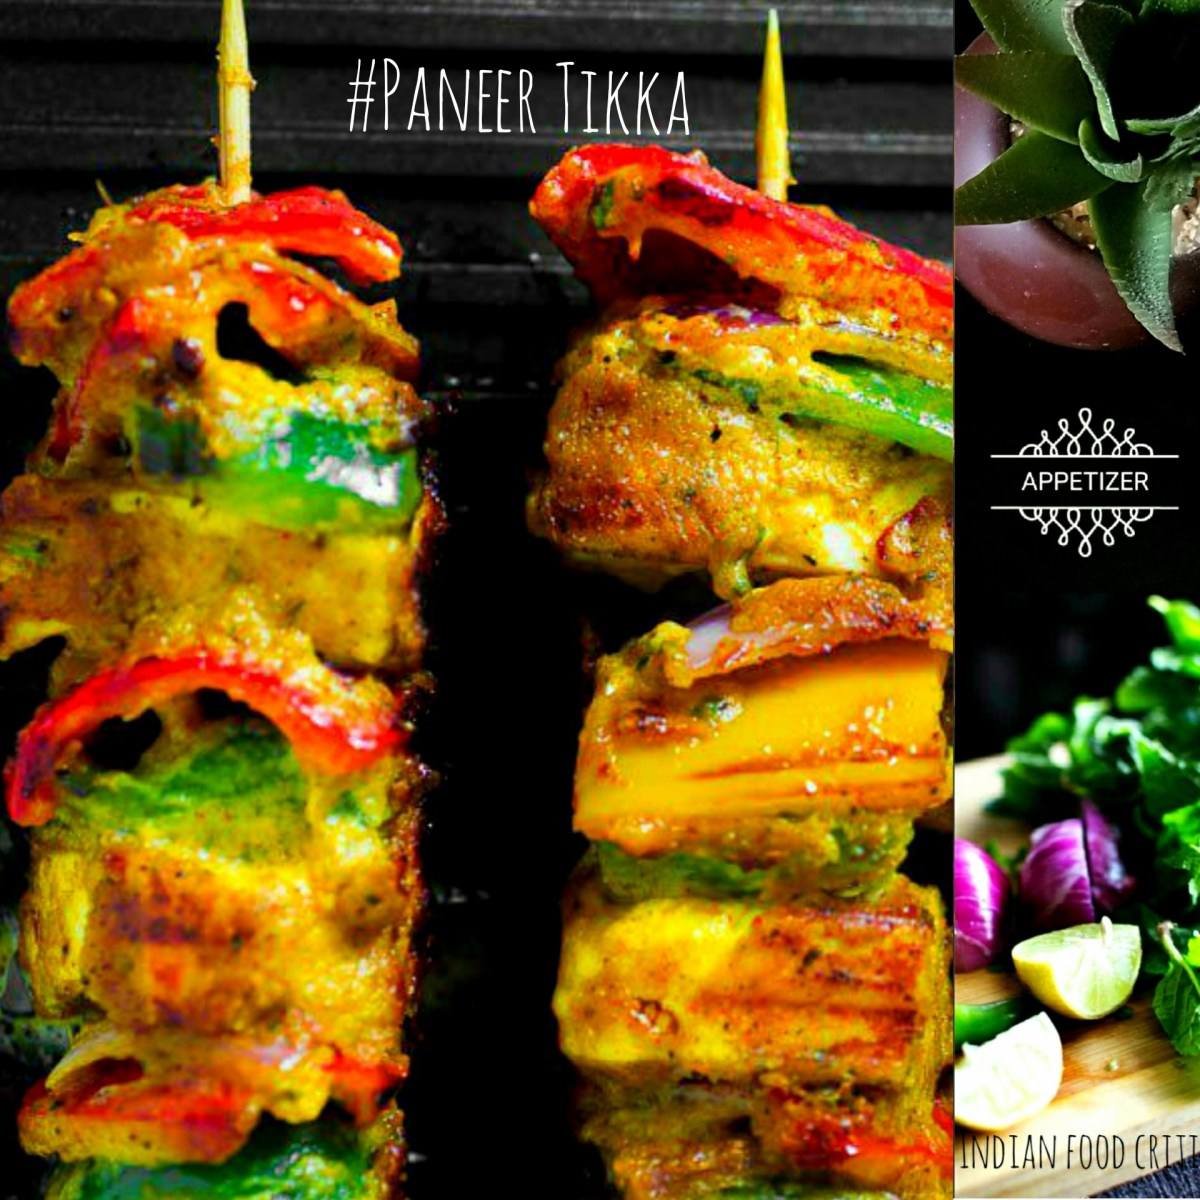 16 Paneer Tikka Recipes | Tandoori Paneer Tikka | Paneer Appetizer Recipes | 4.7/5.0